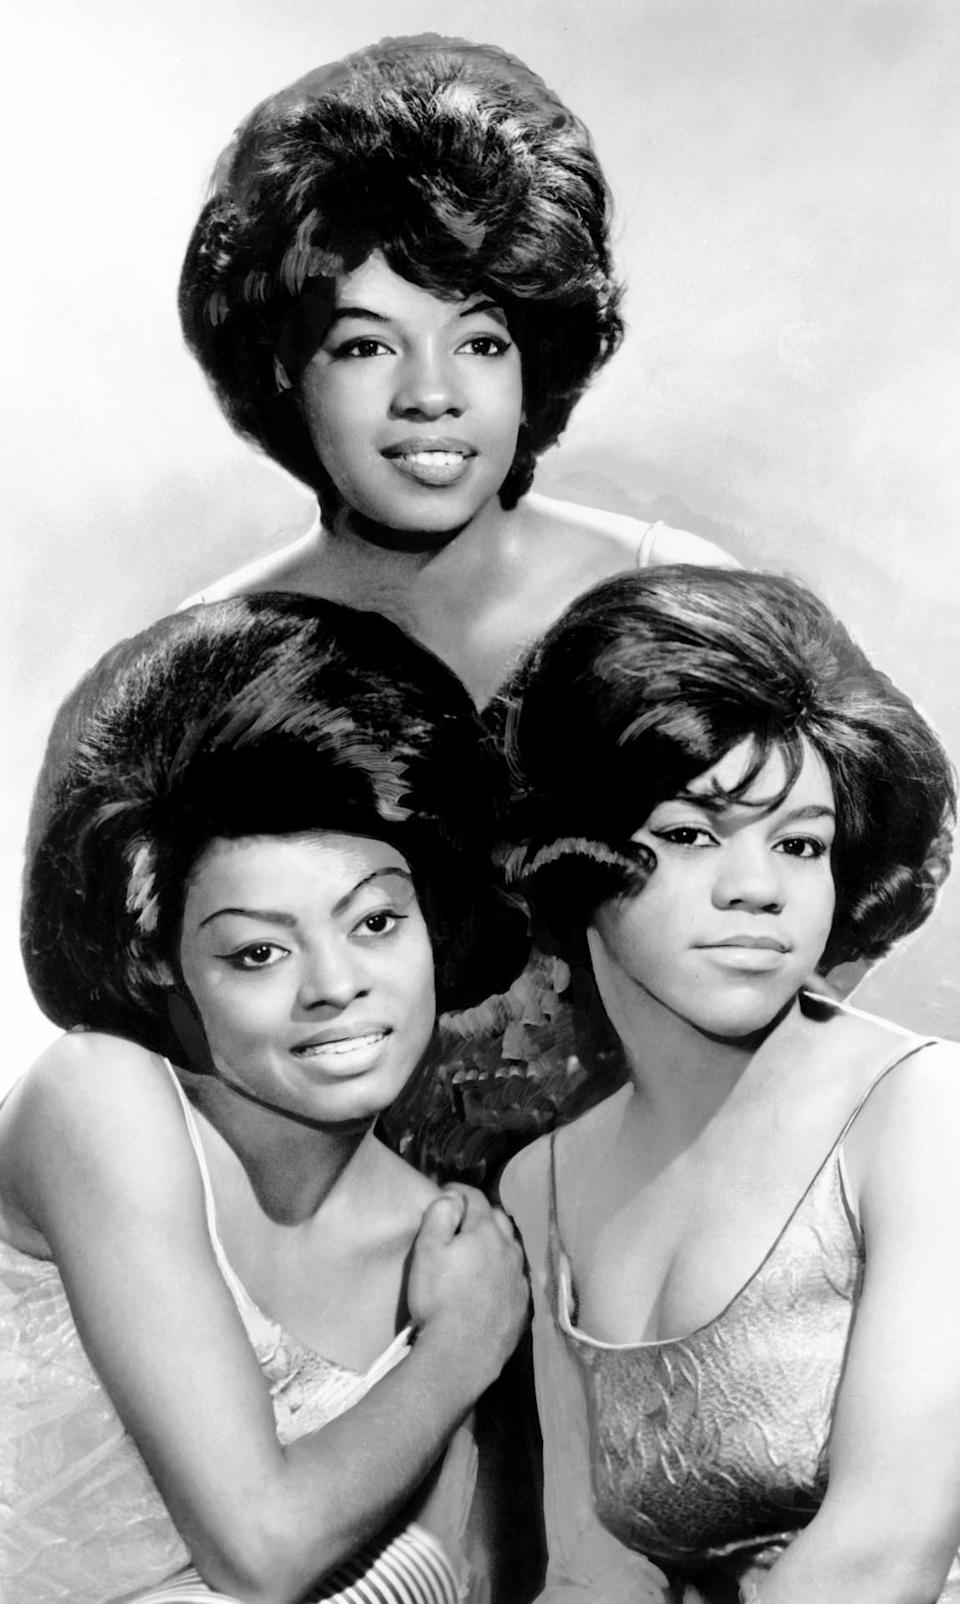 <p>This American female musical group, consisting of Florence Ballard, Mary Wilson, Diana Ross, and Betty McGlown, was the premier Motown act in the '60s. At their peak, The Supremes rivaled The Beatles in popularity and set a precedent for future African American musical acts like Destiny's Child. The group became famous initially because they actually sang live — most other bands were lip-synching at the time. <i>(Source: Everett Collection)</i></p>